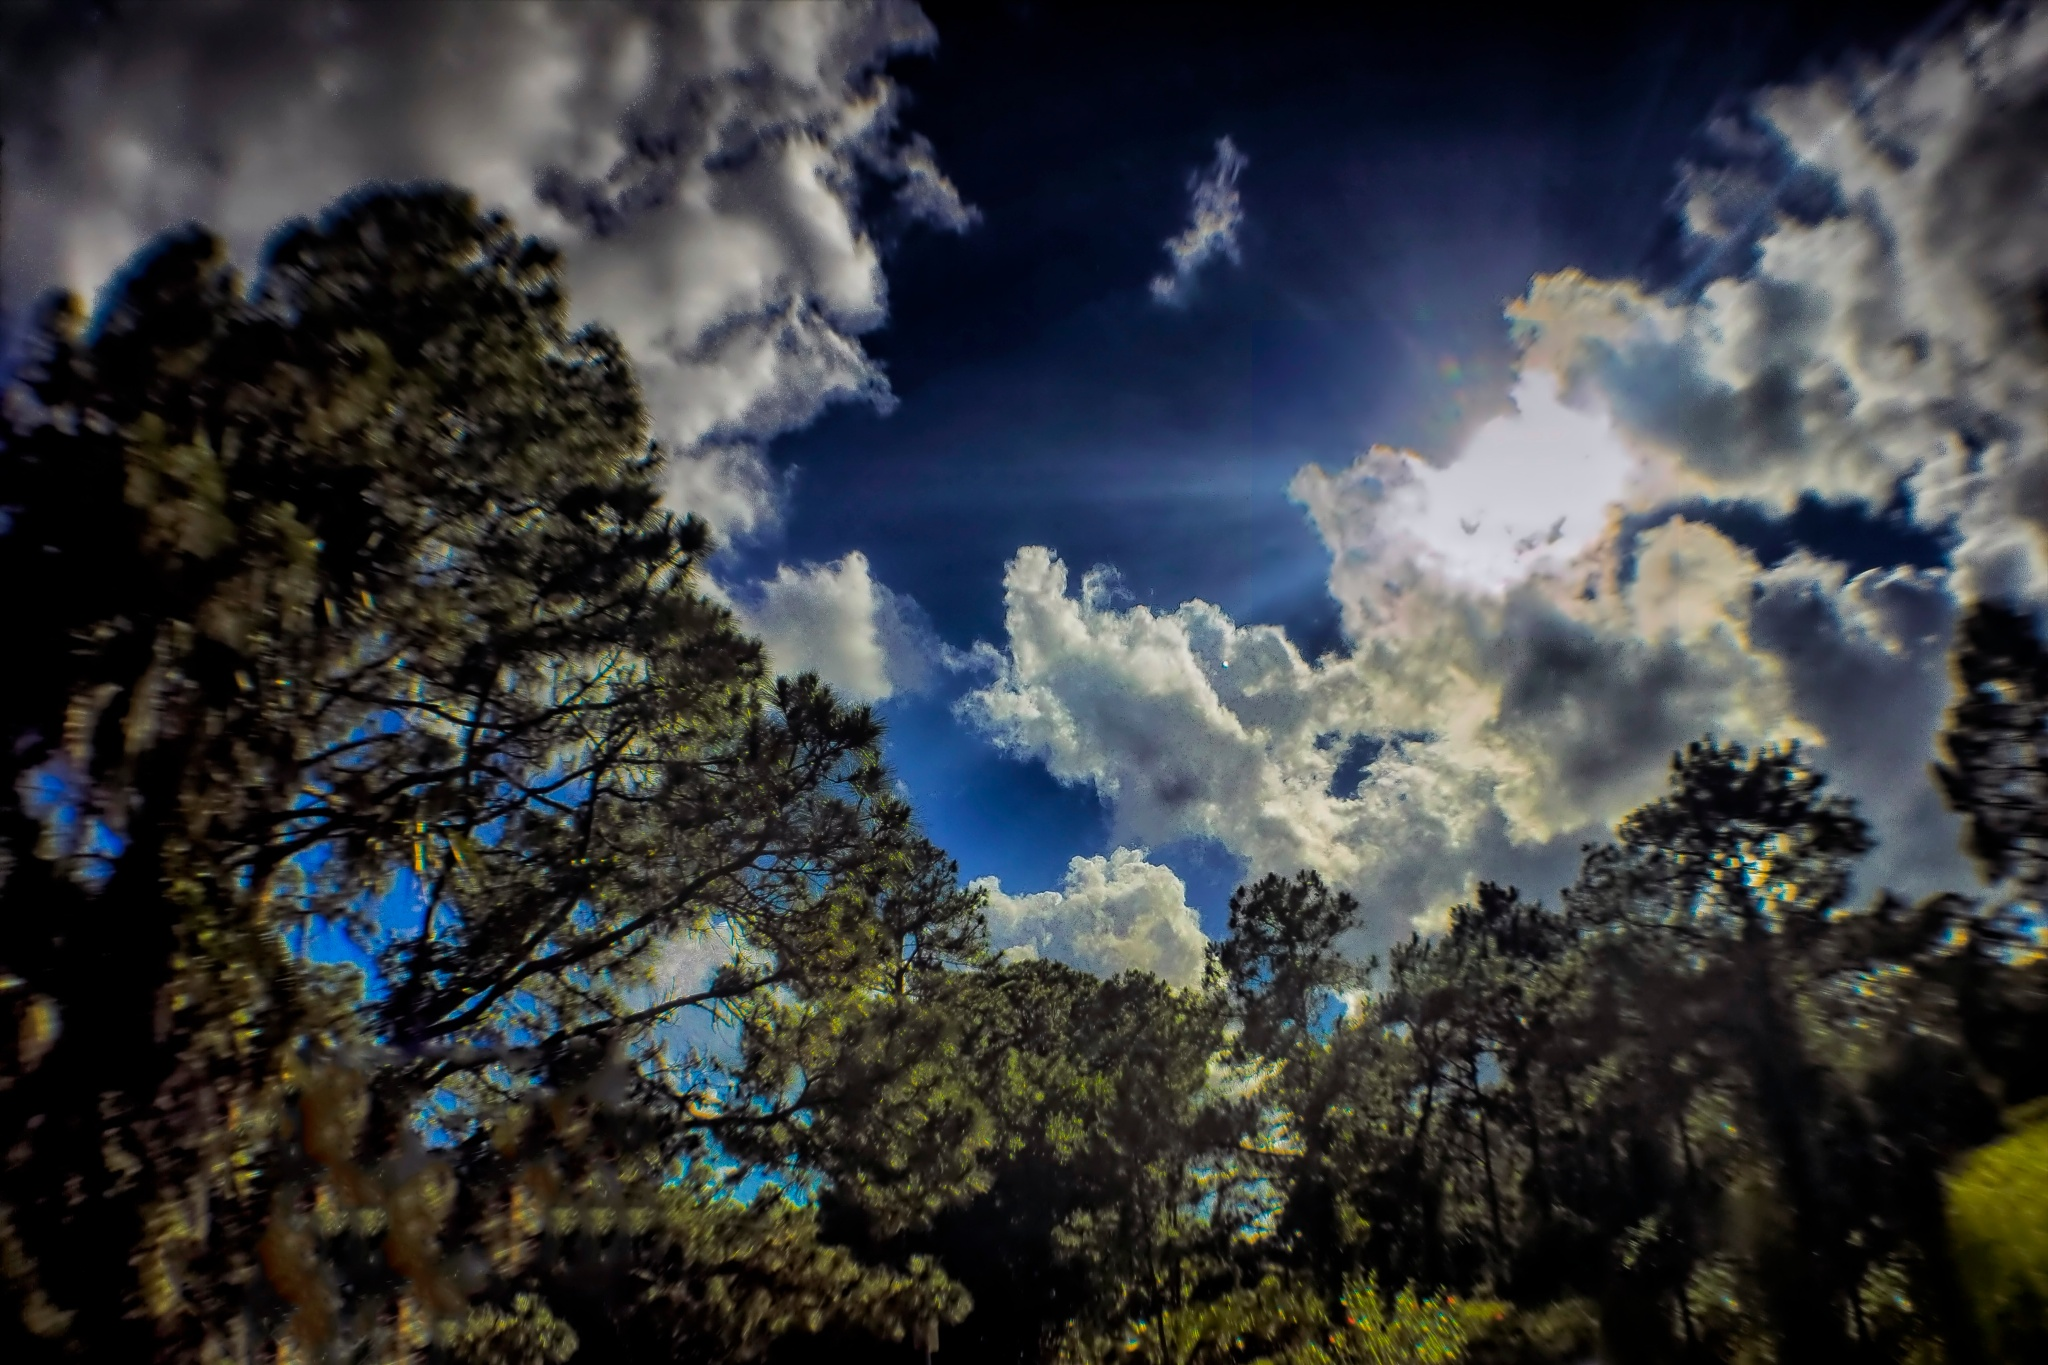 Florida Sky's Today over Palm Bay by Mick Swengrosh